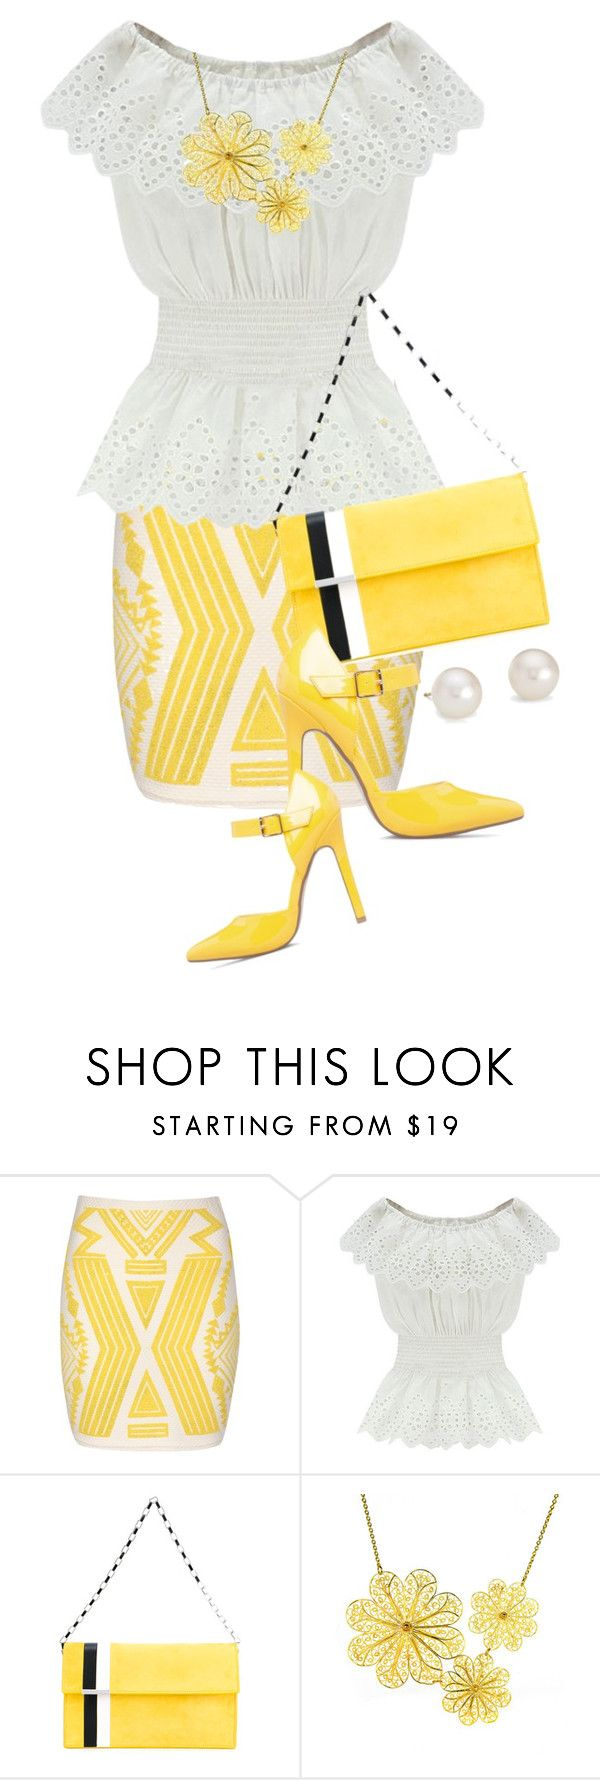 """""""Yellow Aztec Print Skirt (1)"""" by queenrachietemplateaddict ❤ liked on Polyvore featuring Jane Norman, WithChic, Tomasini, ShoeDazzle, Arabel Lebrusan and Blue Nile"""